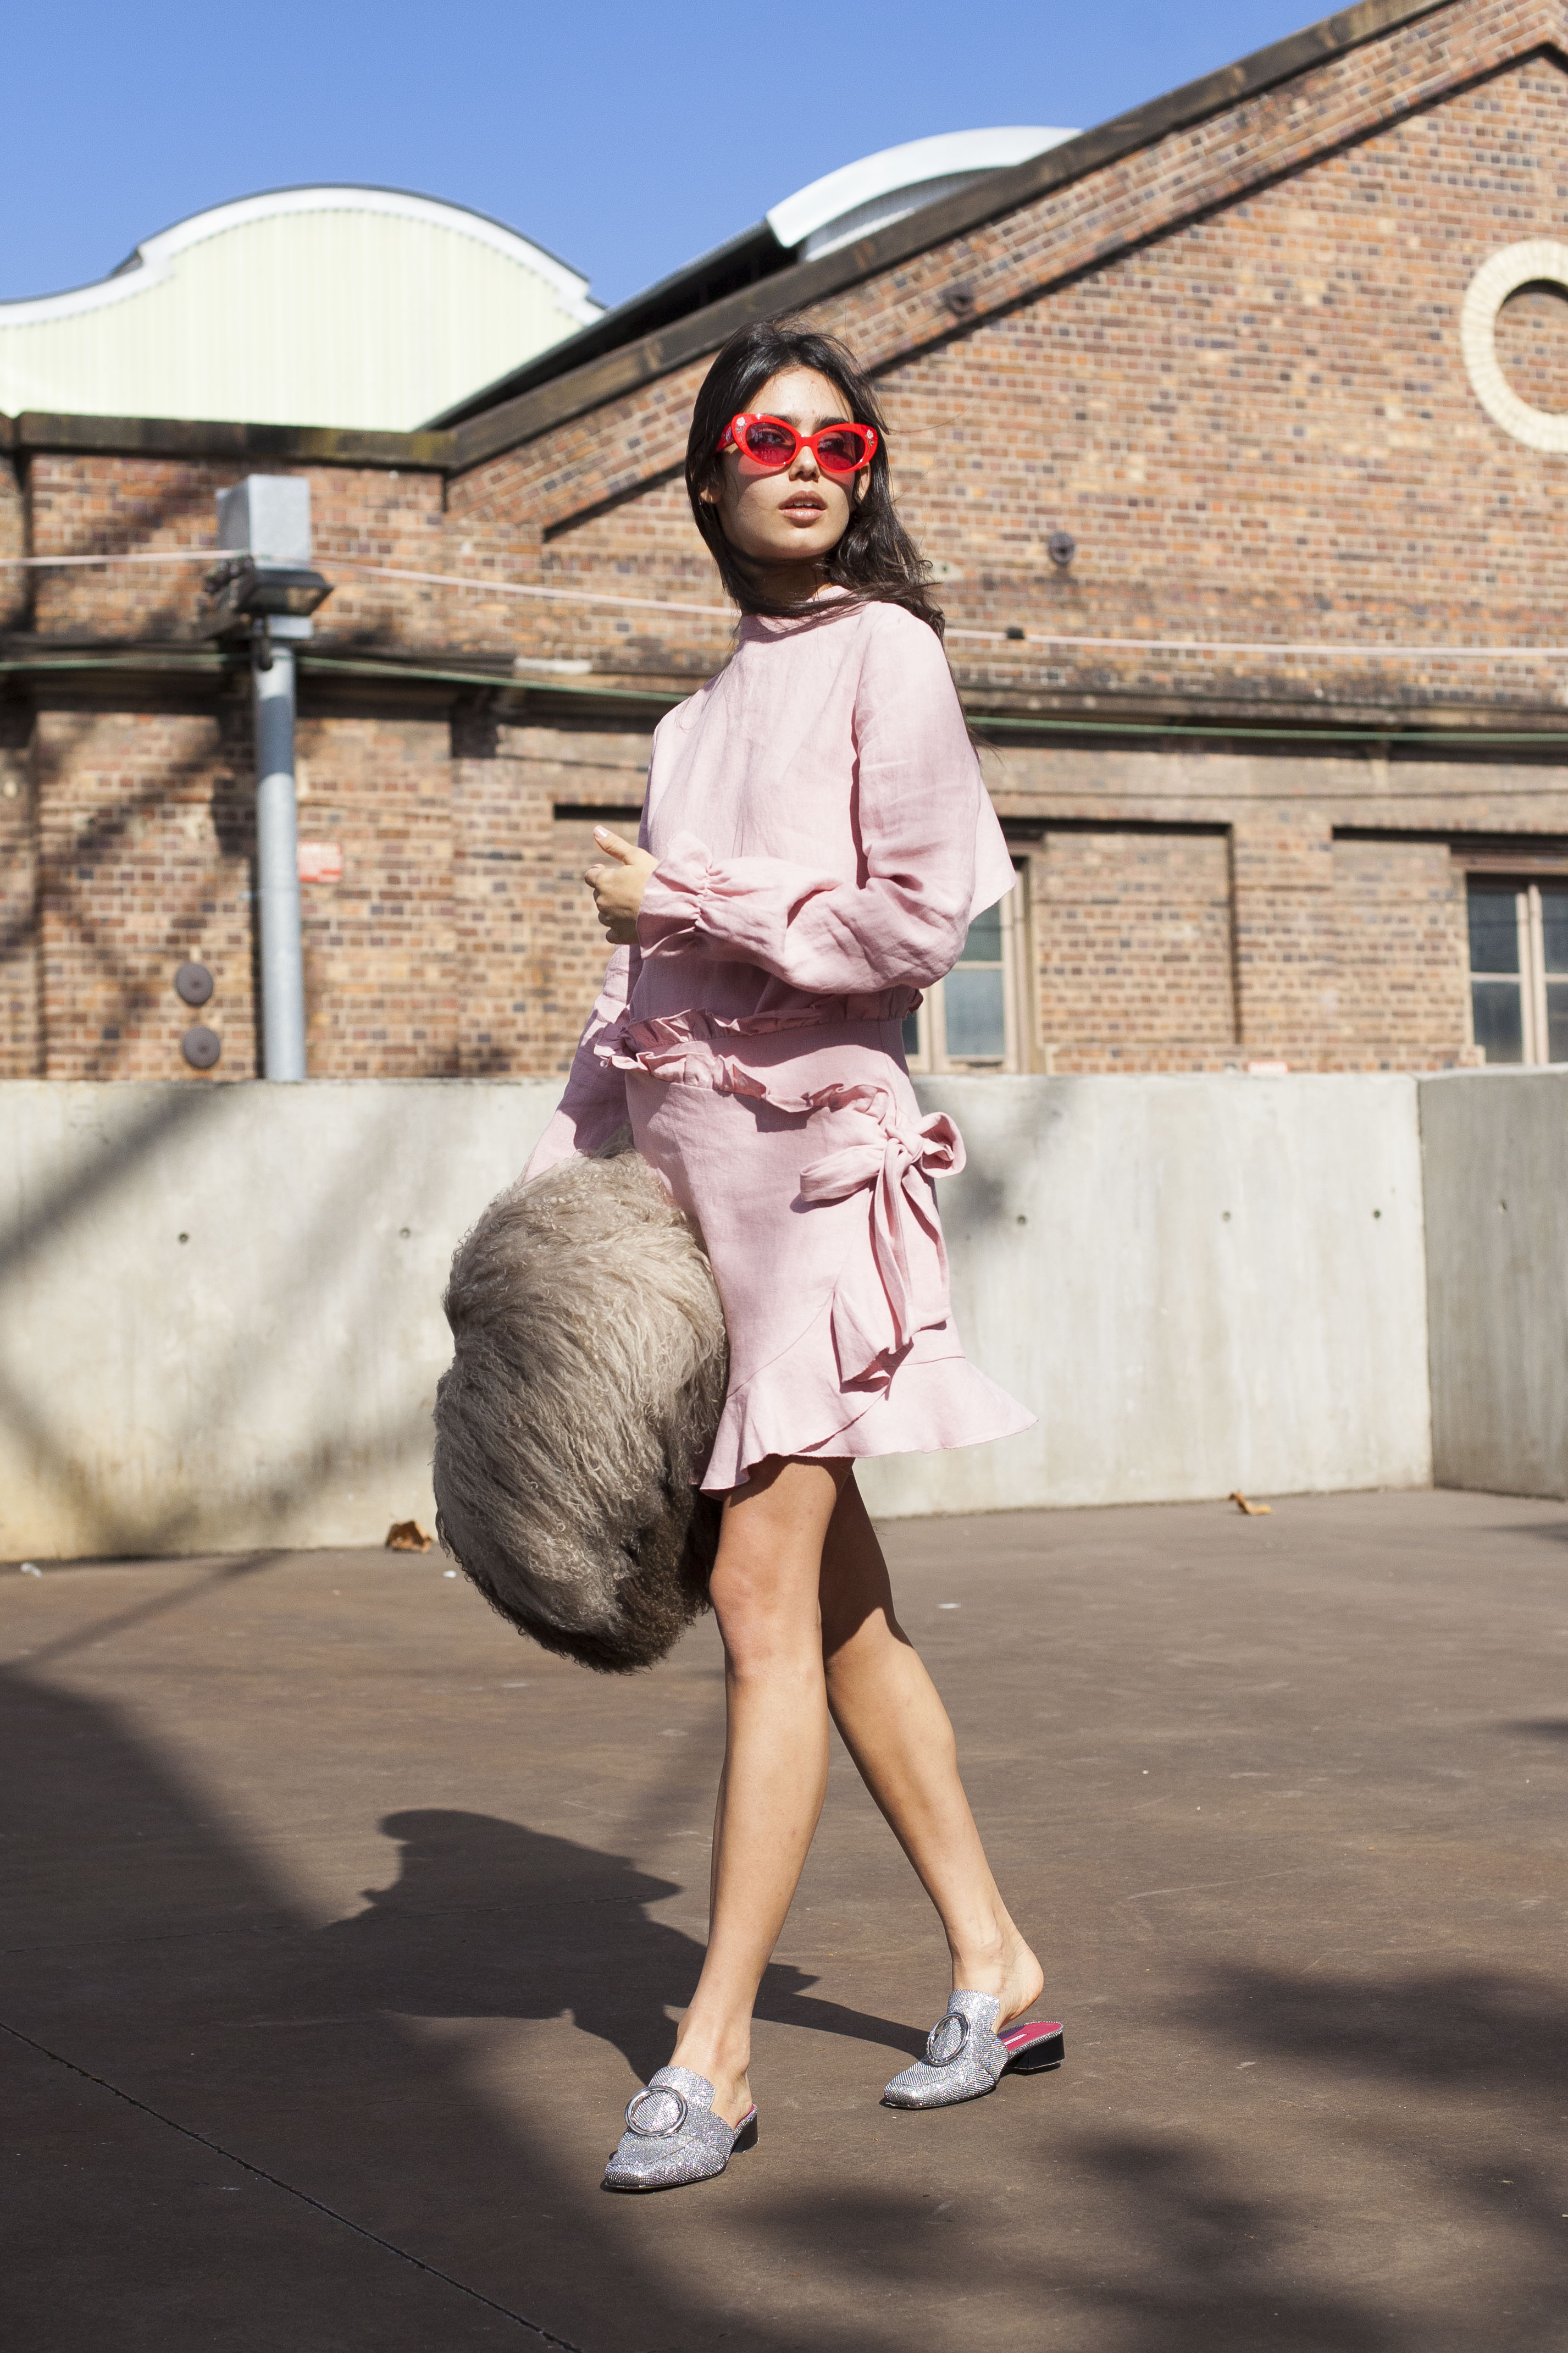 SYDNEY, AUSTRALIA - MAY 18:  Model and Student Talia Berman wearing a Tuchuzy top, Poppy Lissiman sunglasses, Saks Sports coat and Dorateymur shoes during Mercedes-Benz Fashion Week Resort 18 Collections at Carriageworks on May 18, 2017 in Sydney, Australia.  (Photo by Merilyn Smith/WireImage)